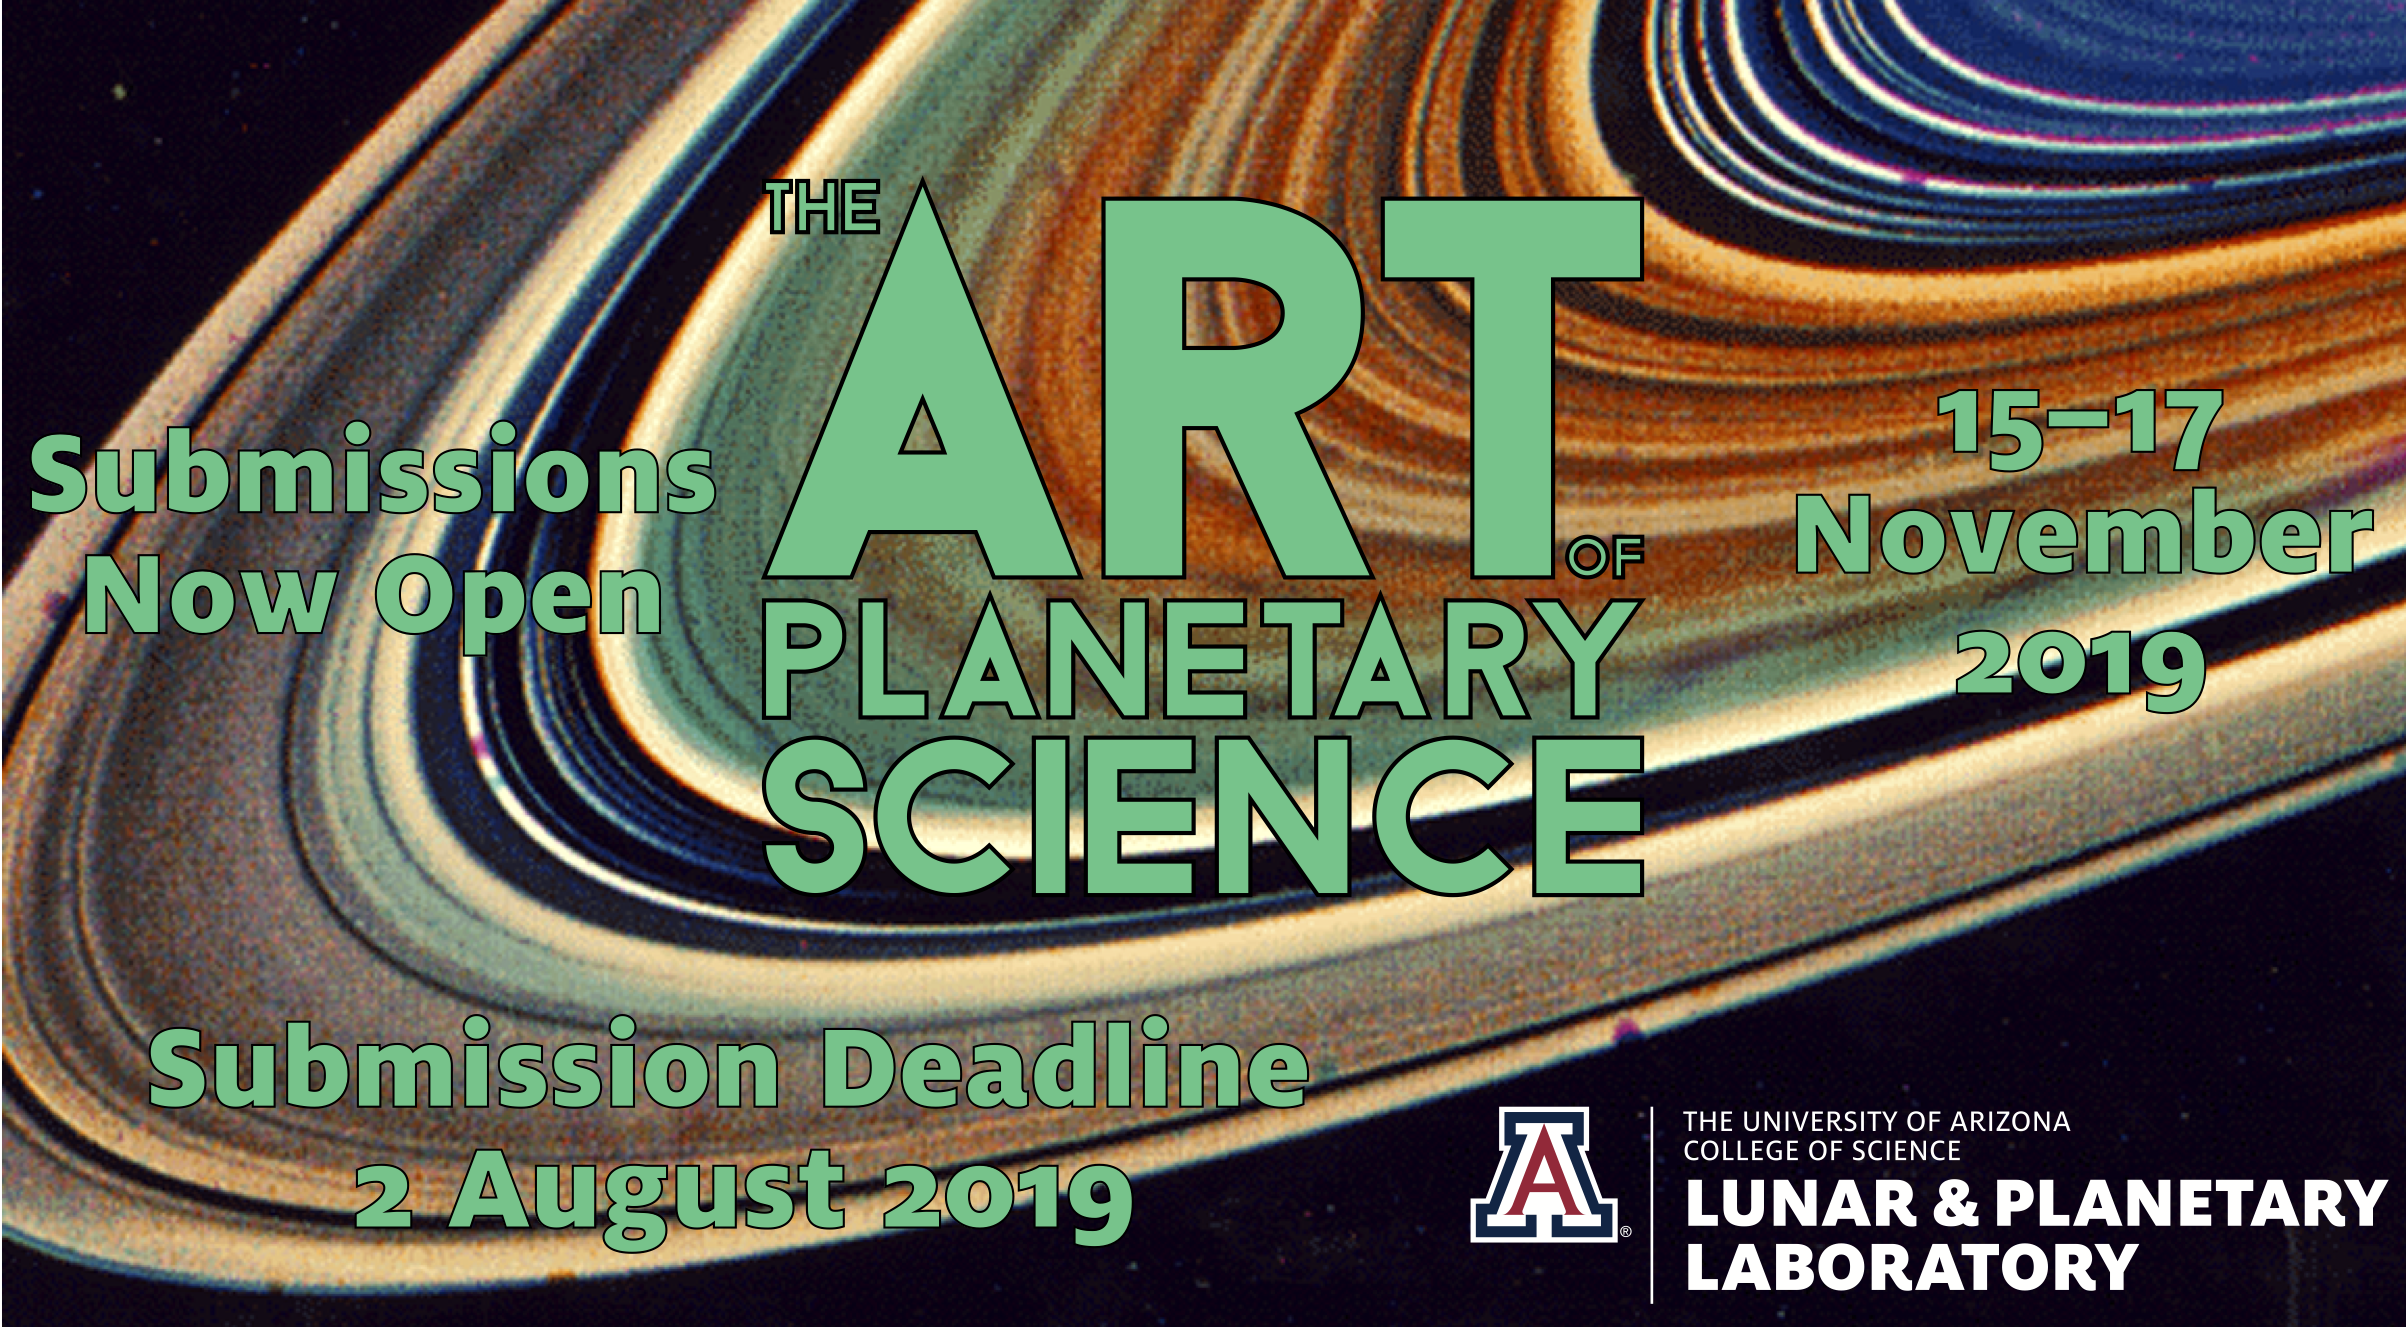 The Art of Planetary Science: 15-17 November, 2019. Submissions now open.